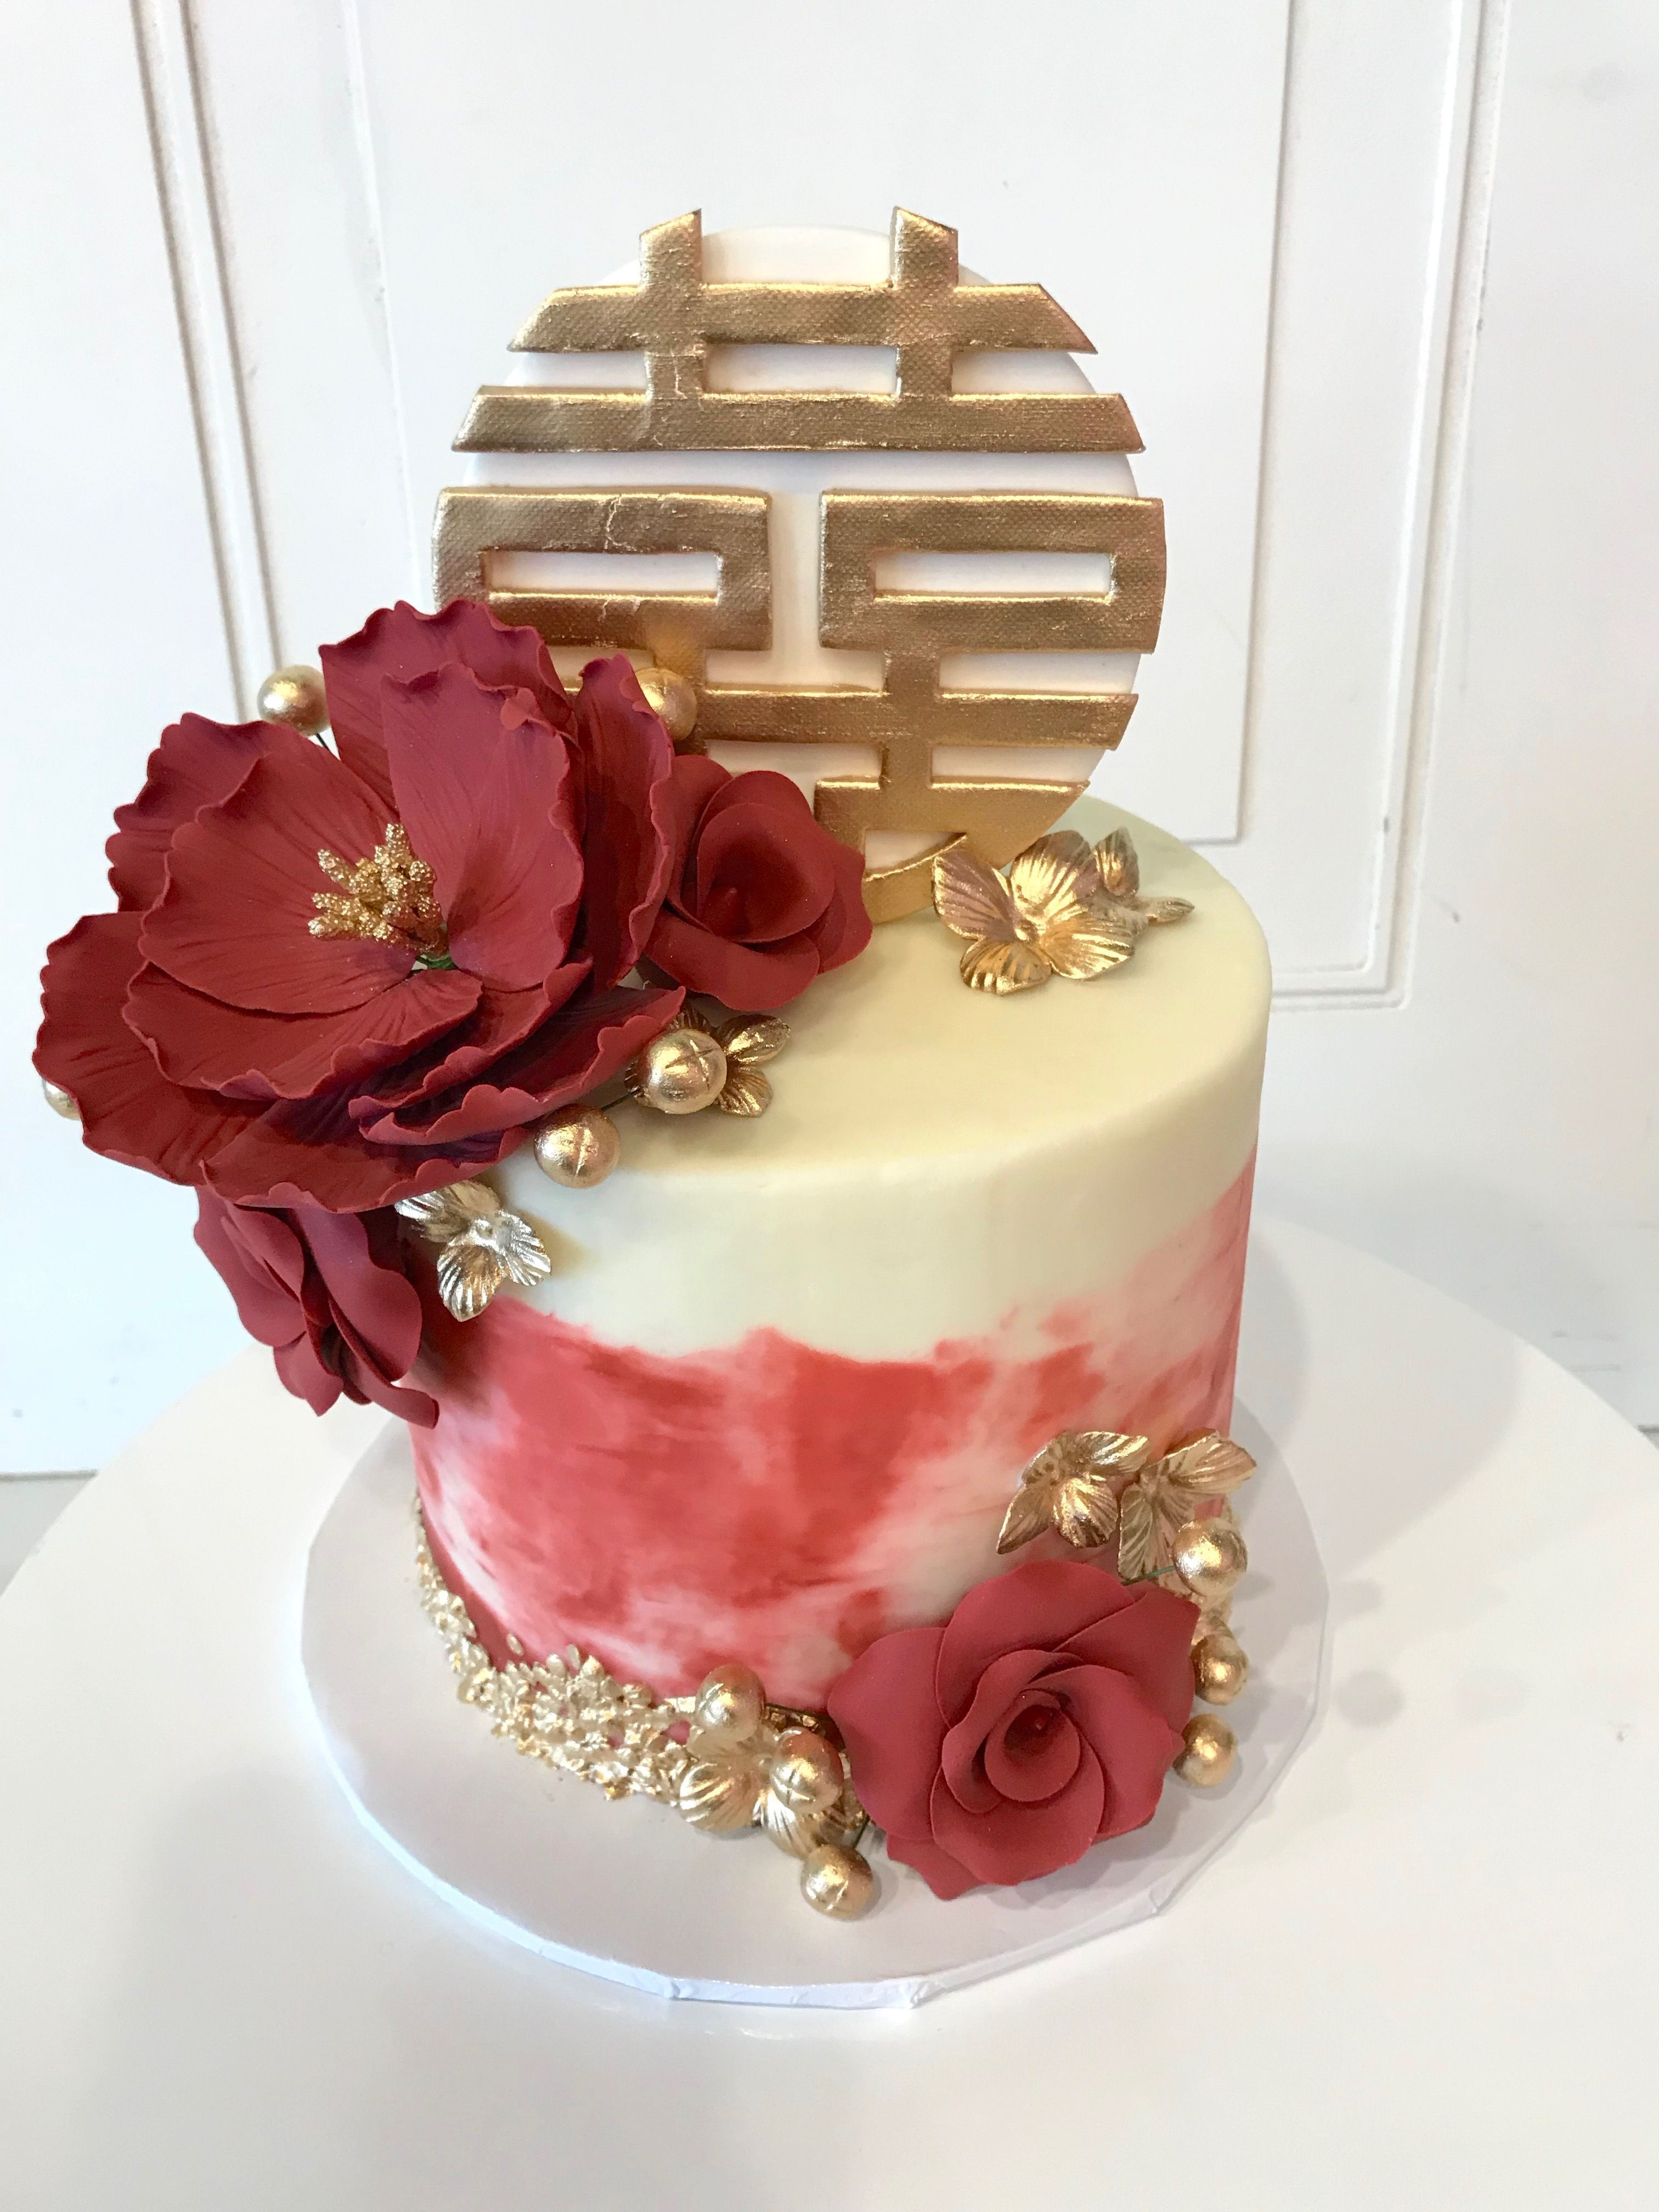 Wedding Cake Made By 3 Sweet Girls Cakery With Red Flowers And Gold Accents It Has The Double Happiness Chinese Symbol Wedding Cakes Cake Themed Wedding Cakes